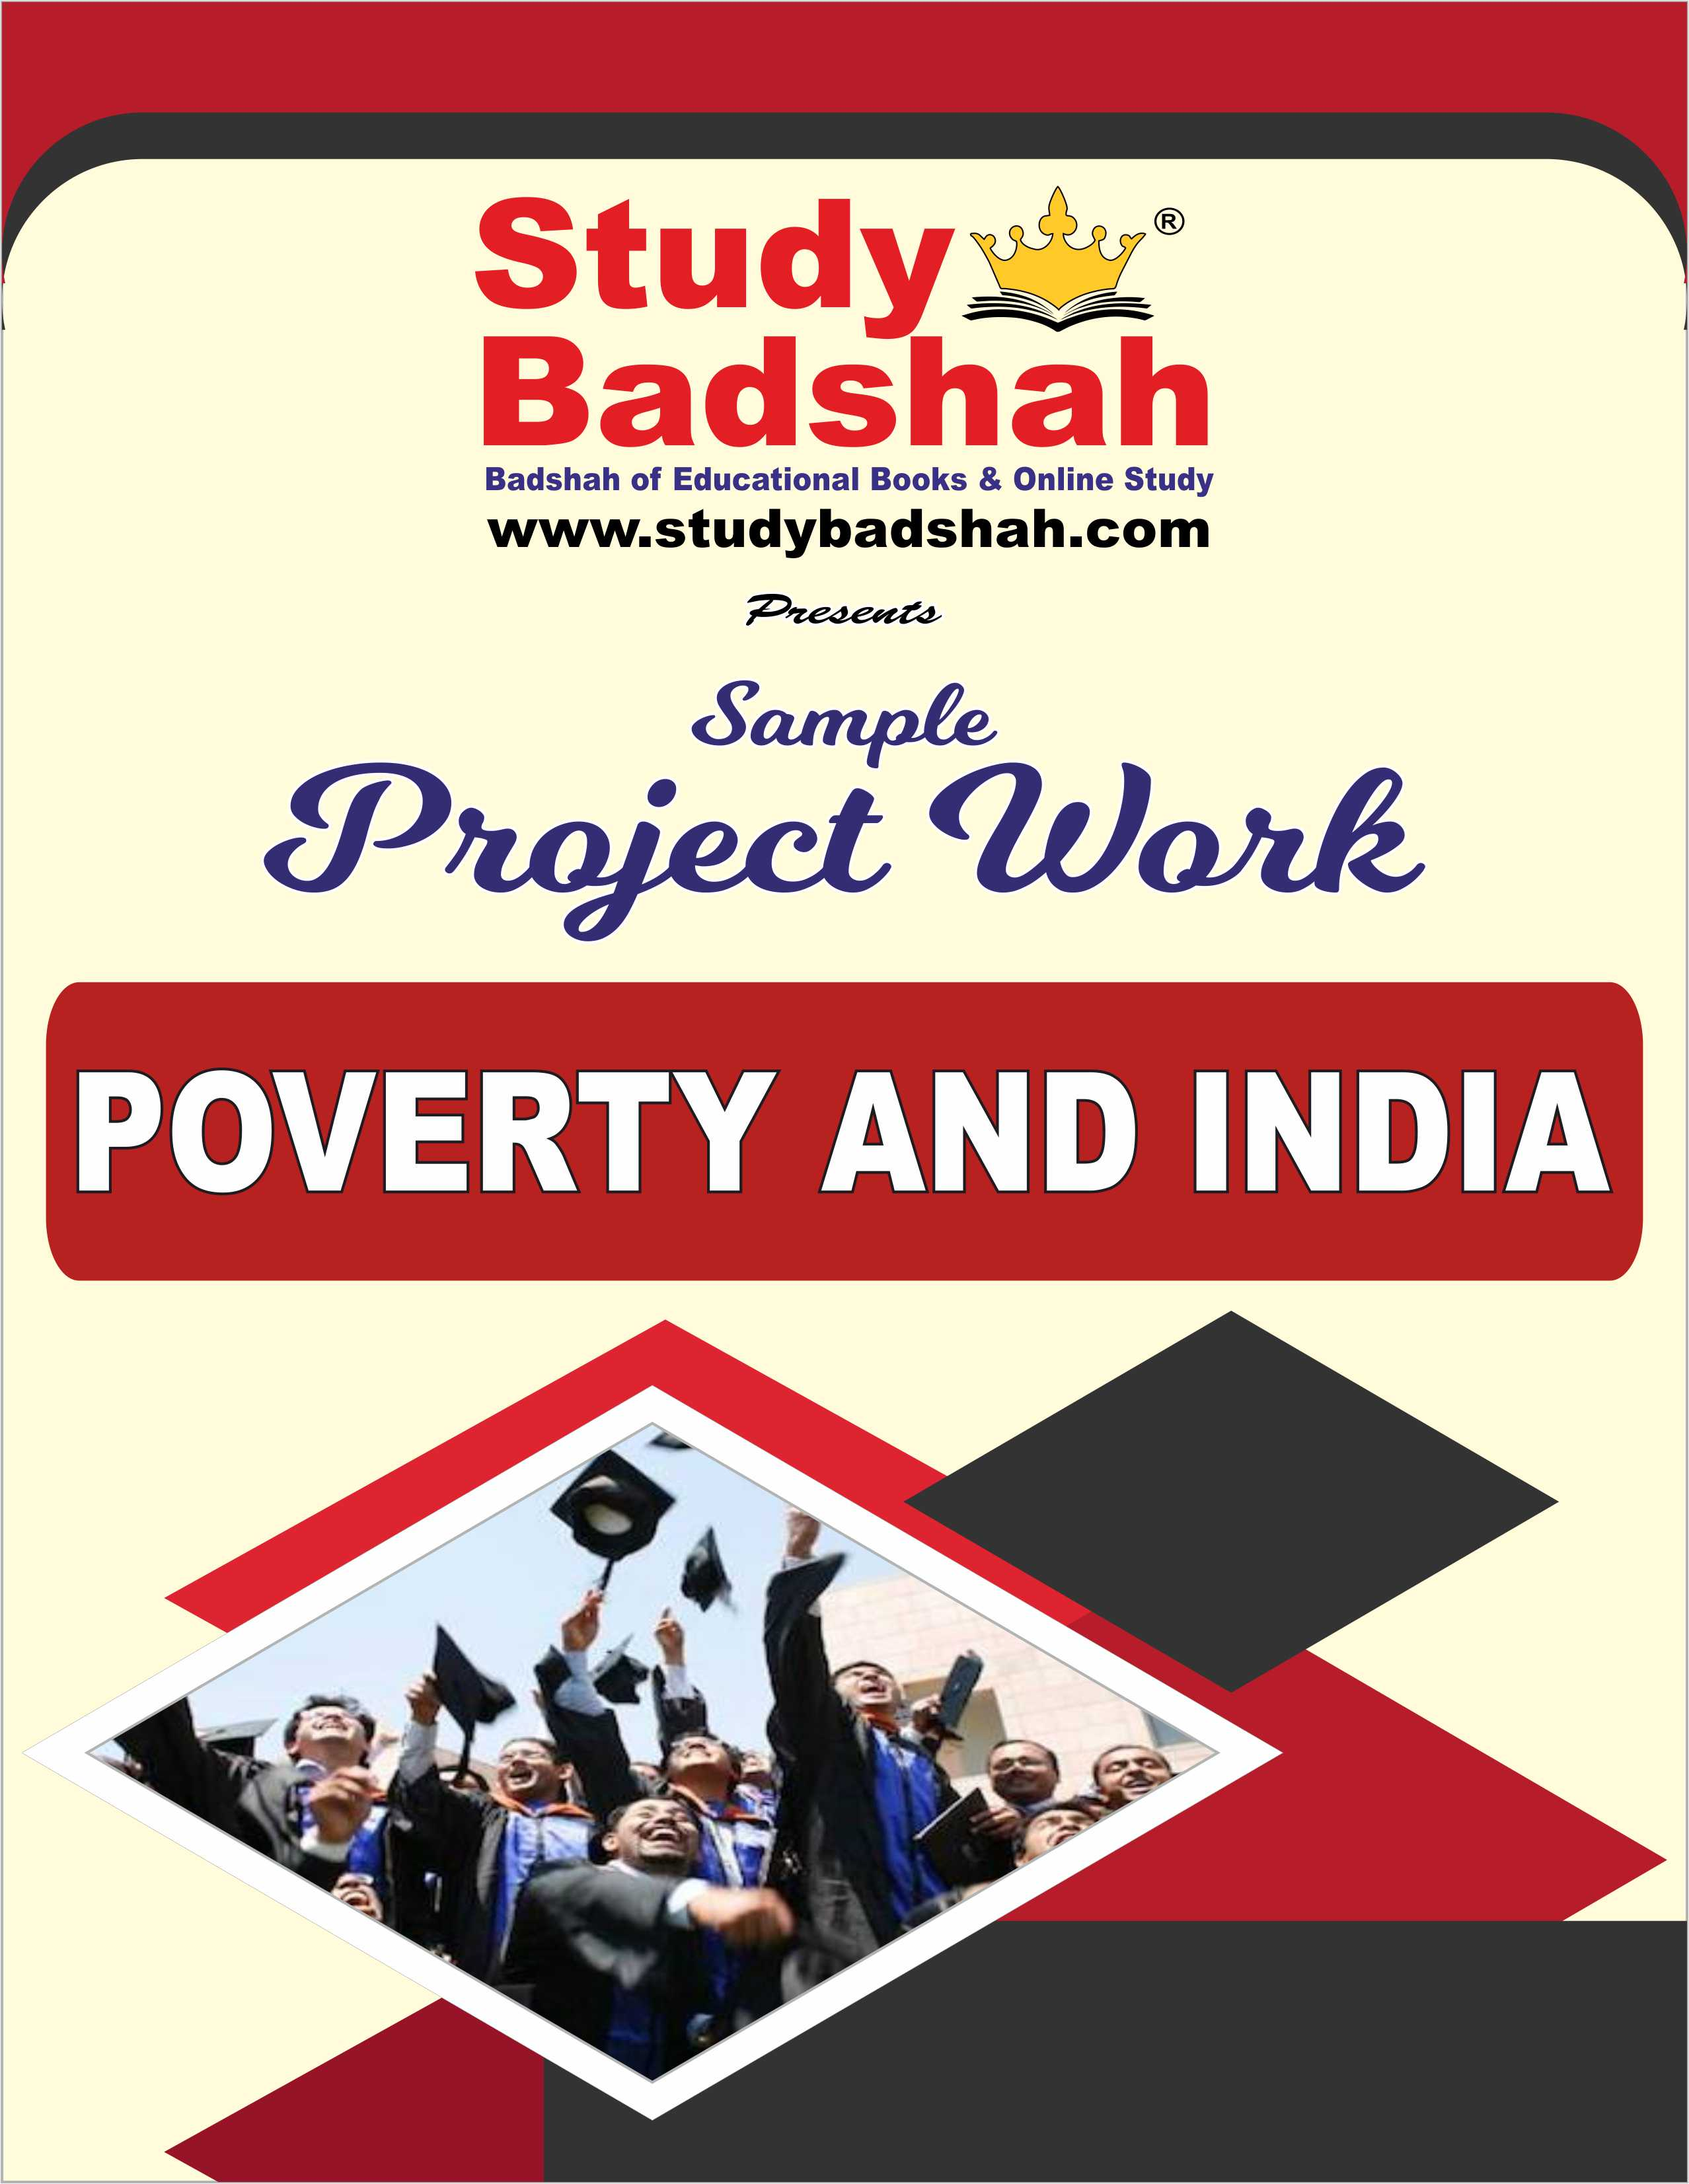 POVERTY AND INDIA